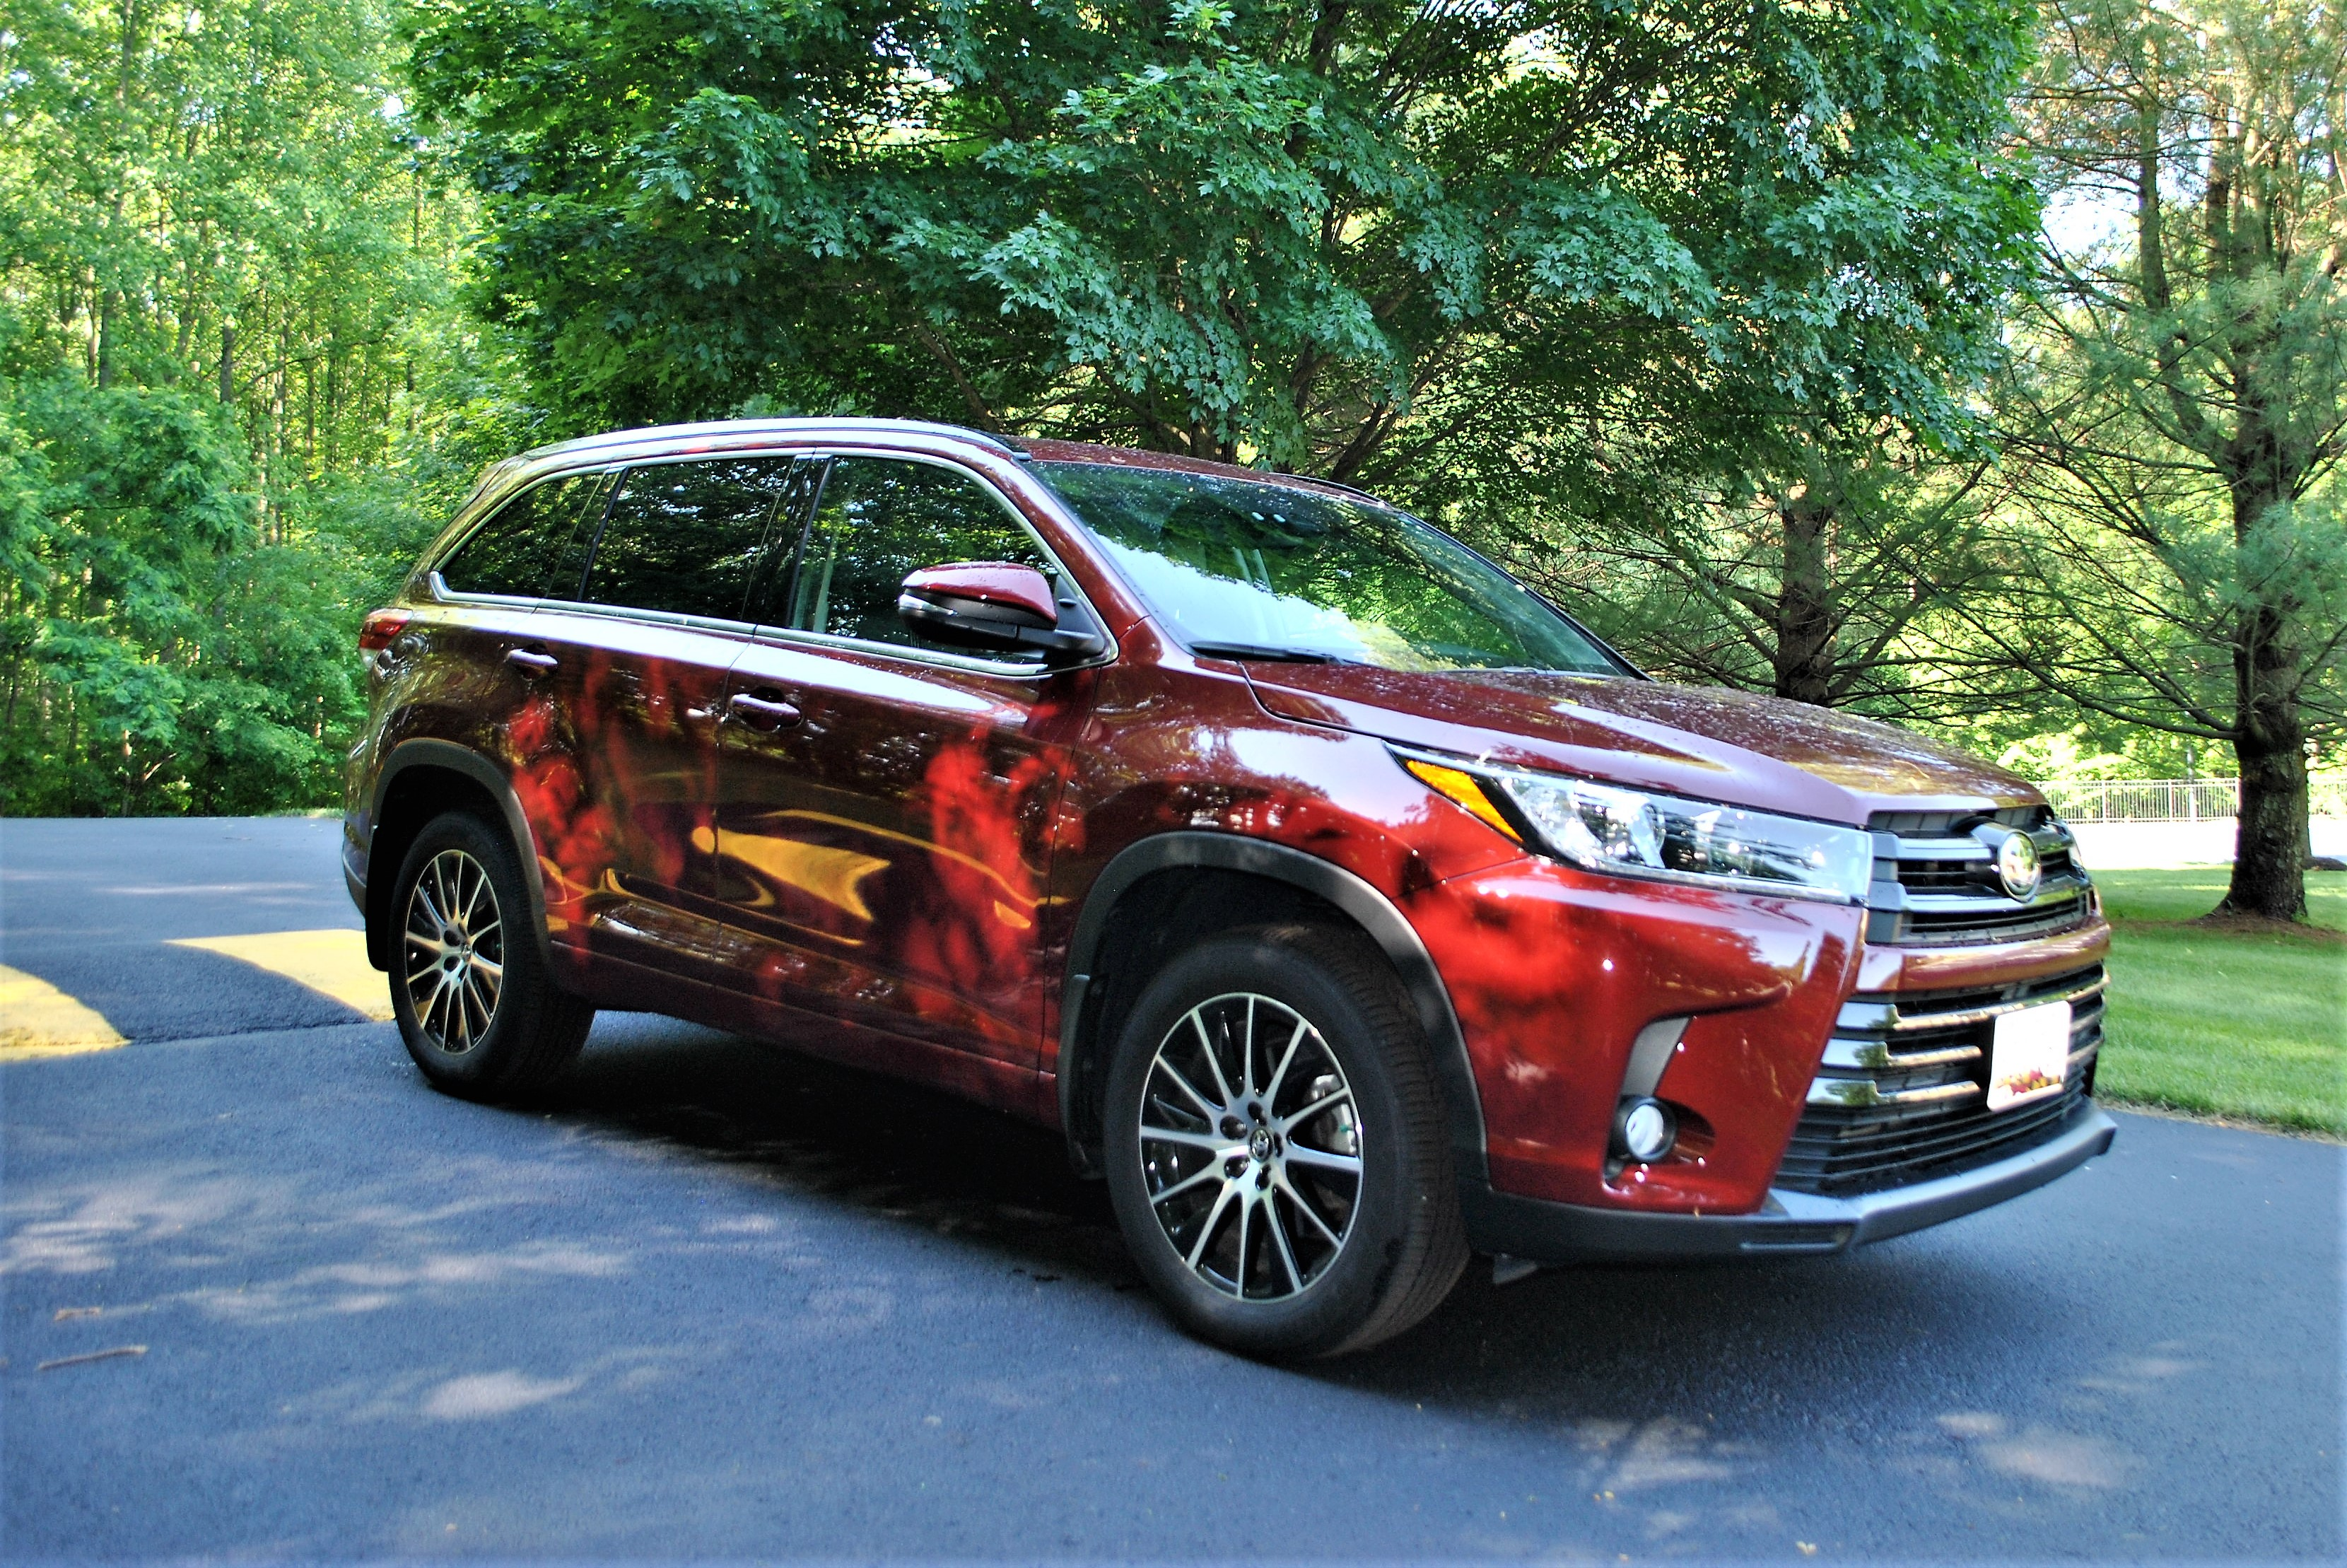 it gets excellent gas mileage and is a safe ride does that ring true for the refreshed 2017 toyota highlander se with awd that i tested out last month